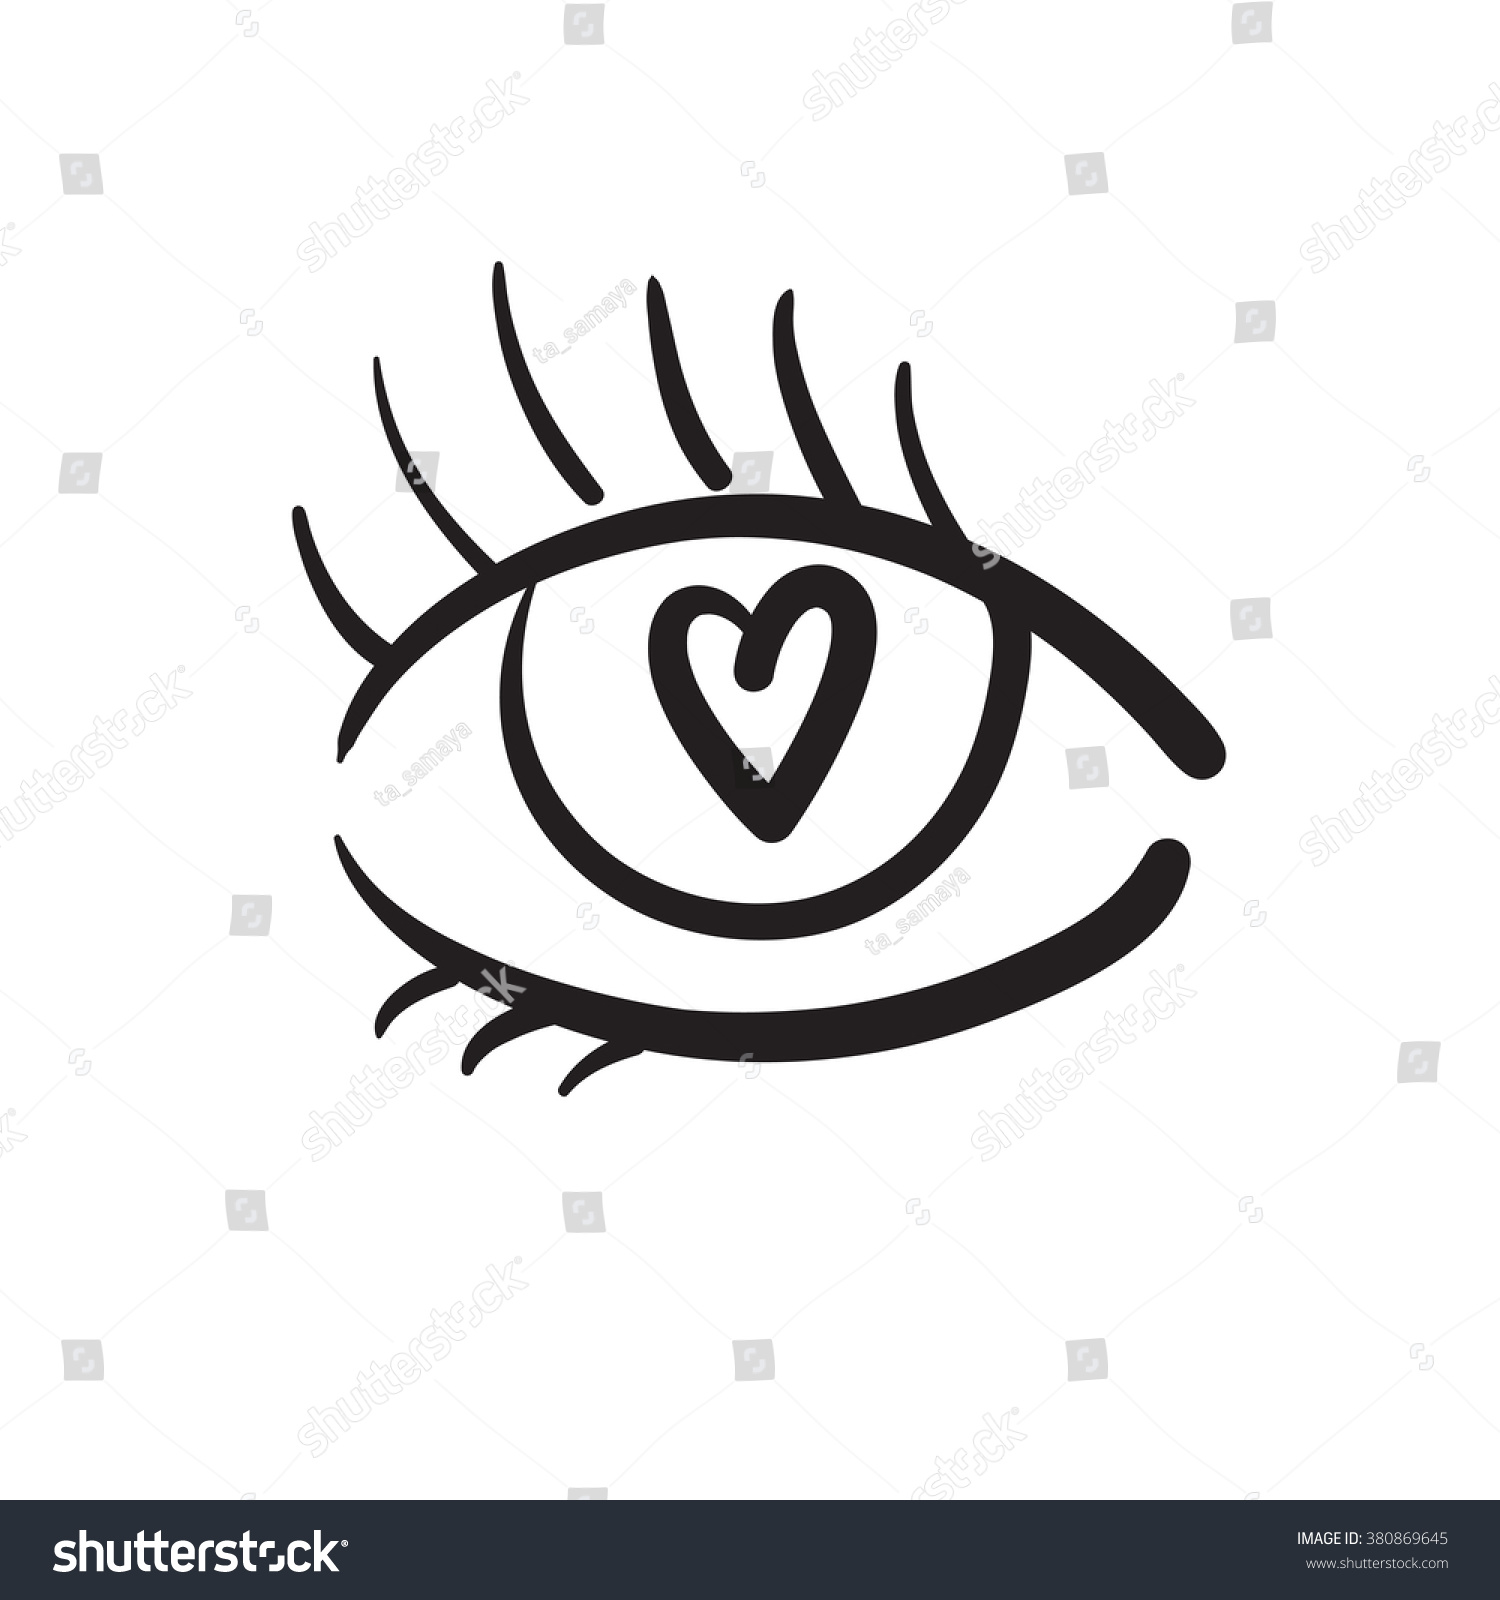 Hand drawn eye little heart inside stock vector 380869645 shutterstock hand drawn eye with little heart inside vector illustration black and white buycottarizona Images